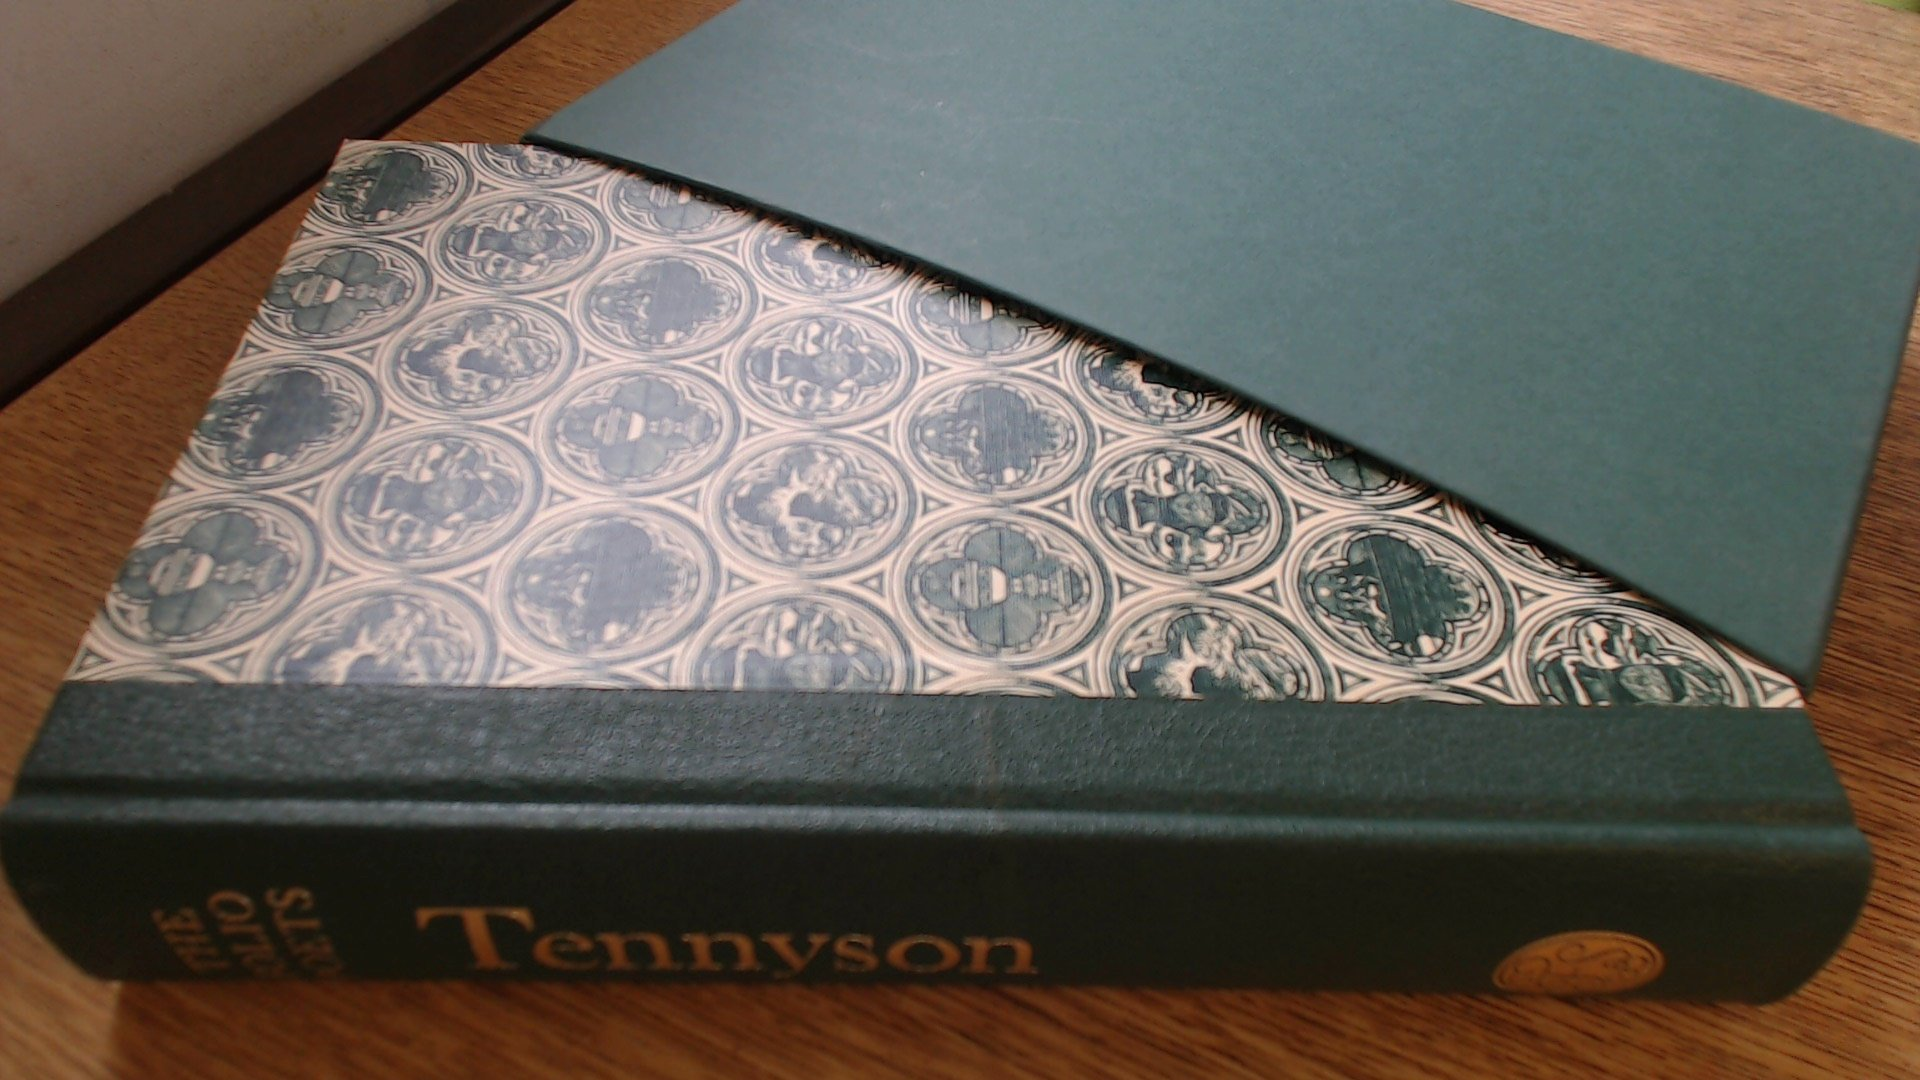 Tennyson: The Folio Poets: Amazon.es: Ruth Padel: Libros